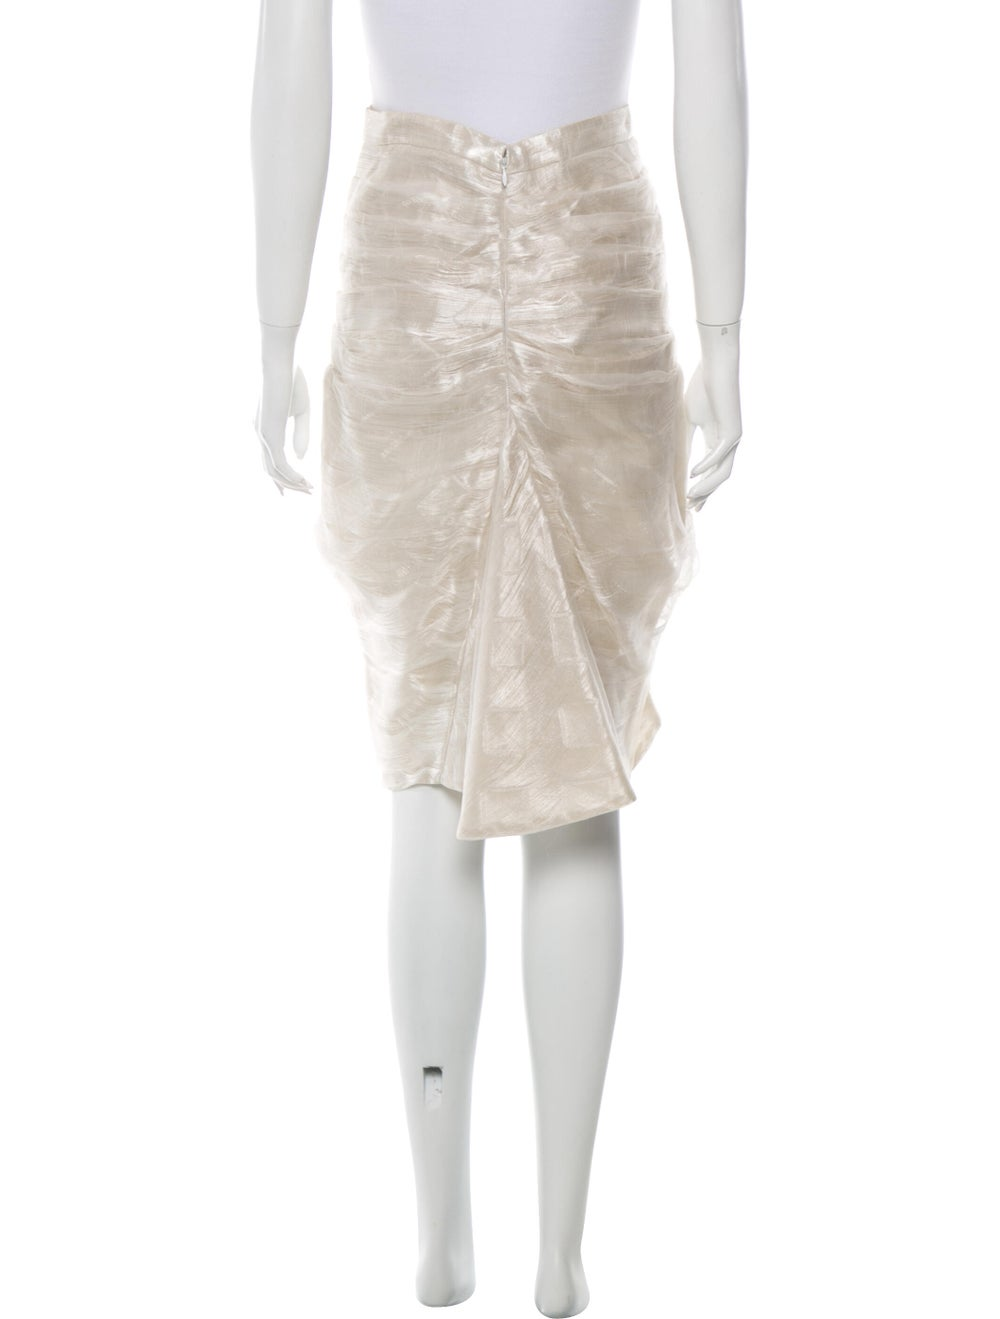 Paco Rabanne Pleated Accents Knee-Length Skirt - image 3